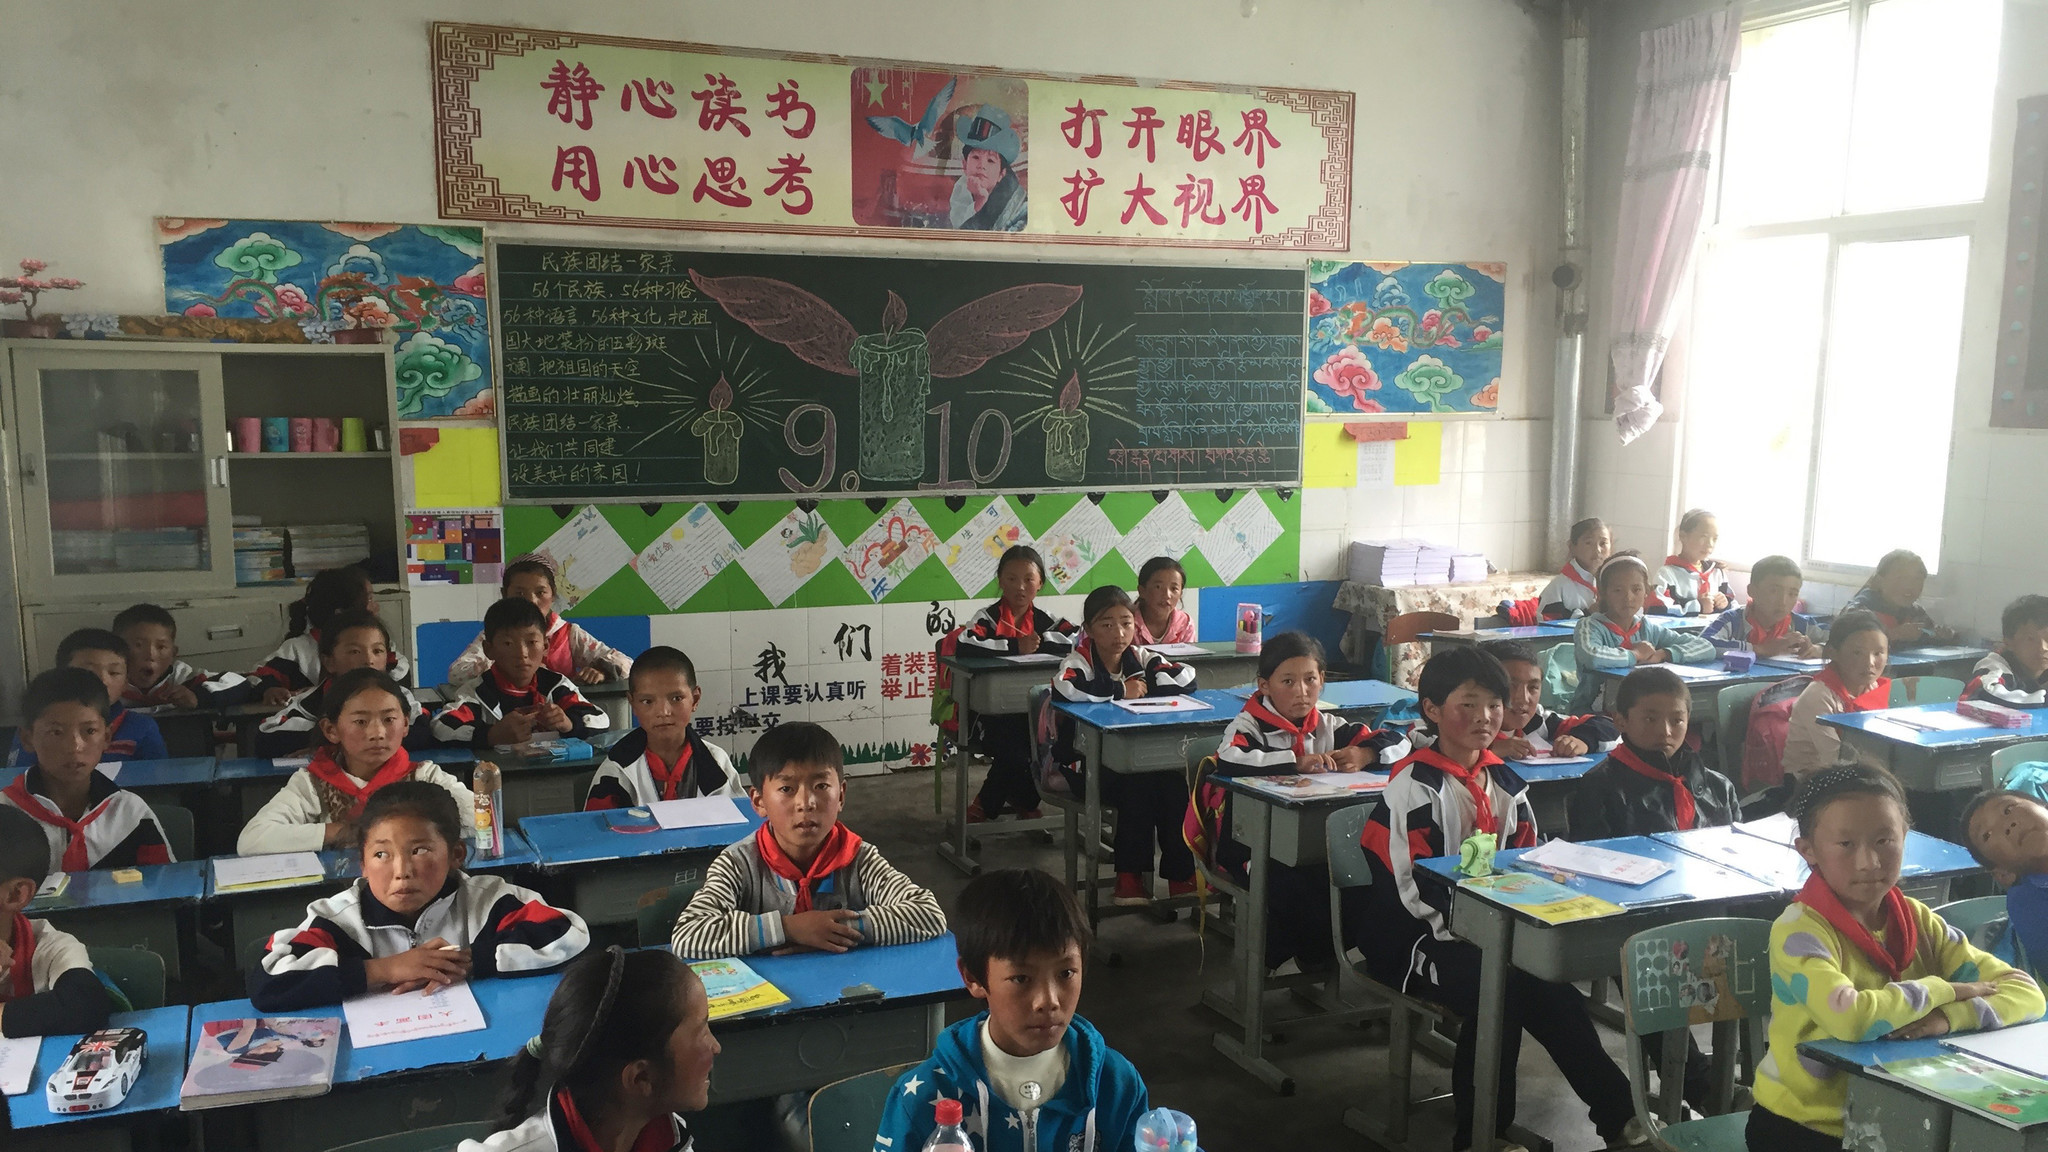 Students at the Qiongxi town primary school, a boarding school for the children of Tibetan herders. Most classes are taught in Tibetan.